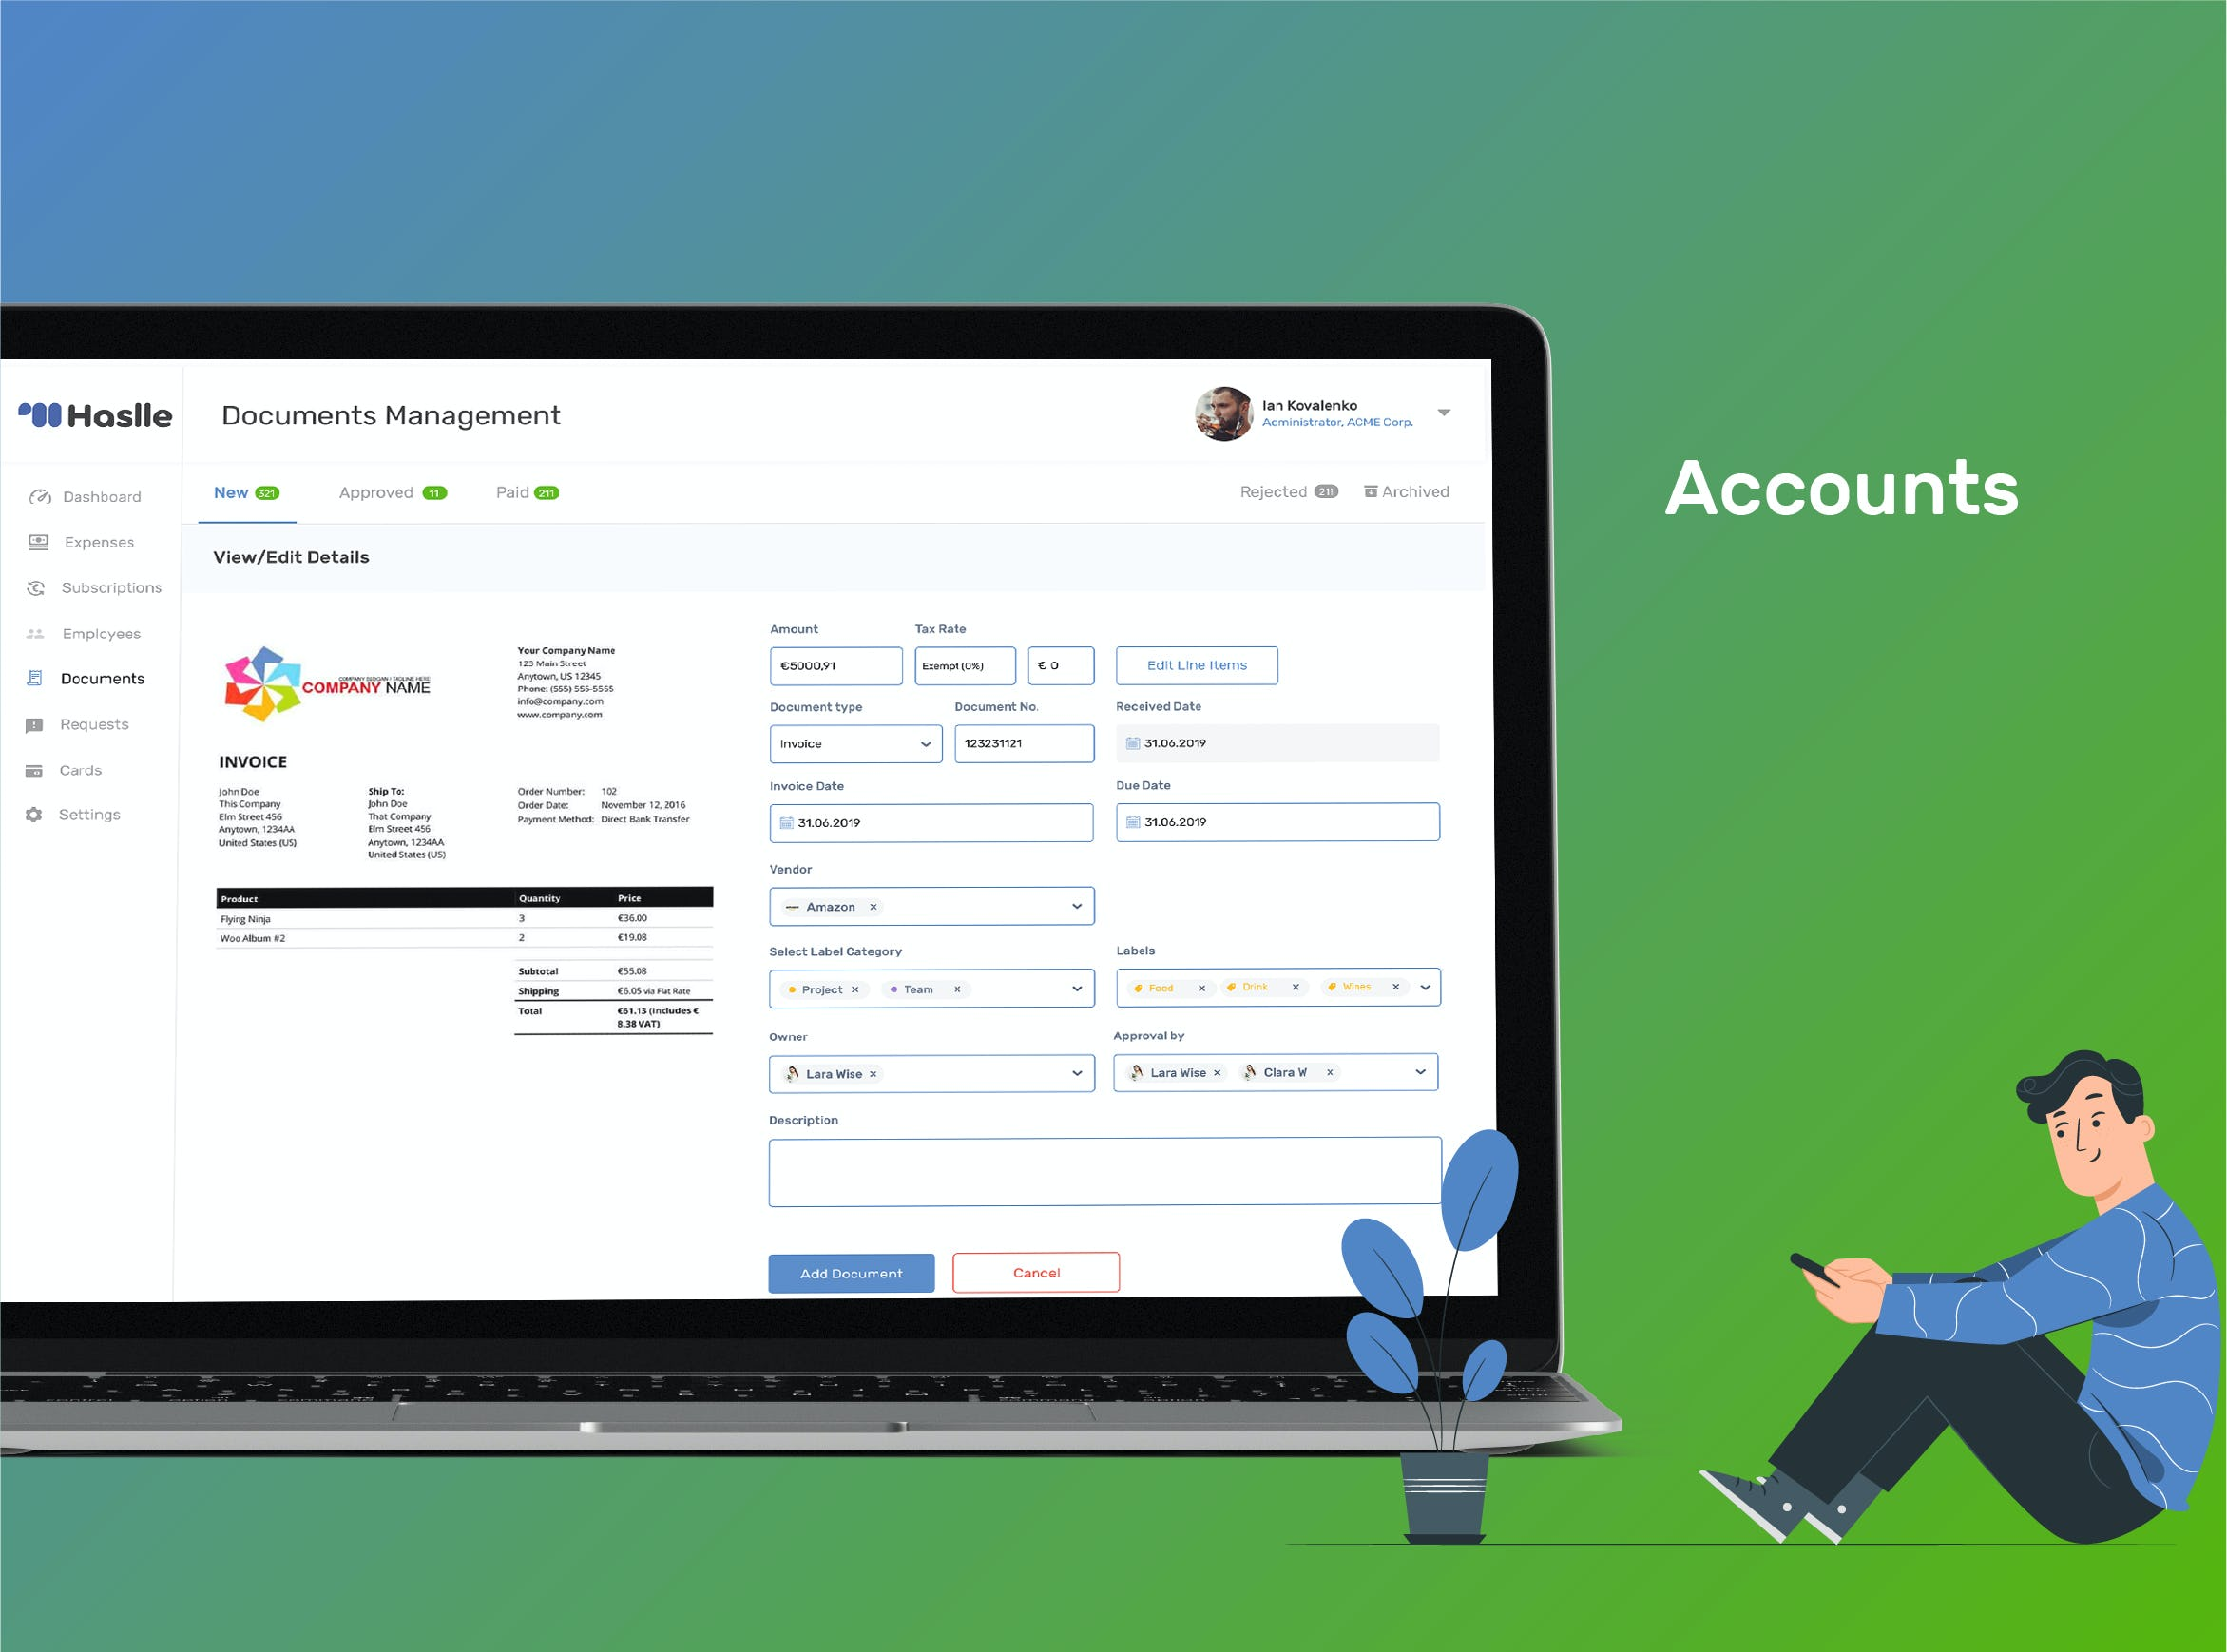 Accounts - Team, Employees and Managers